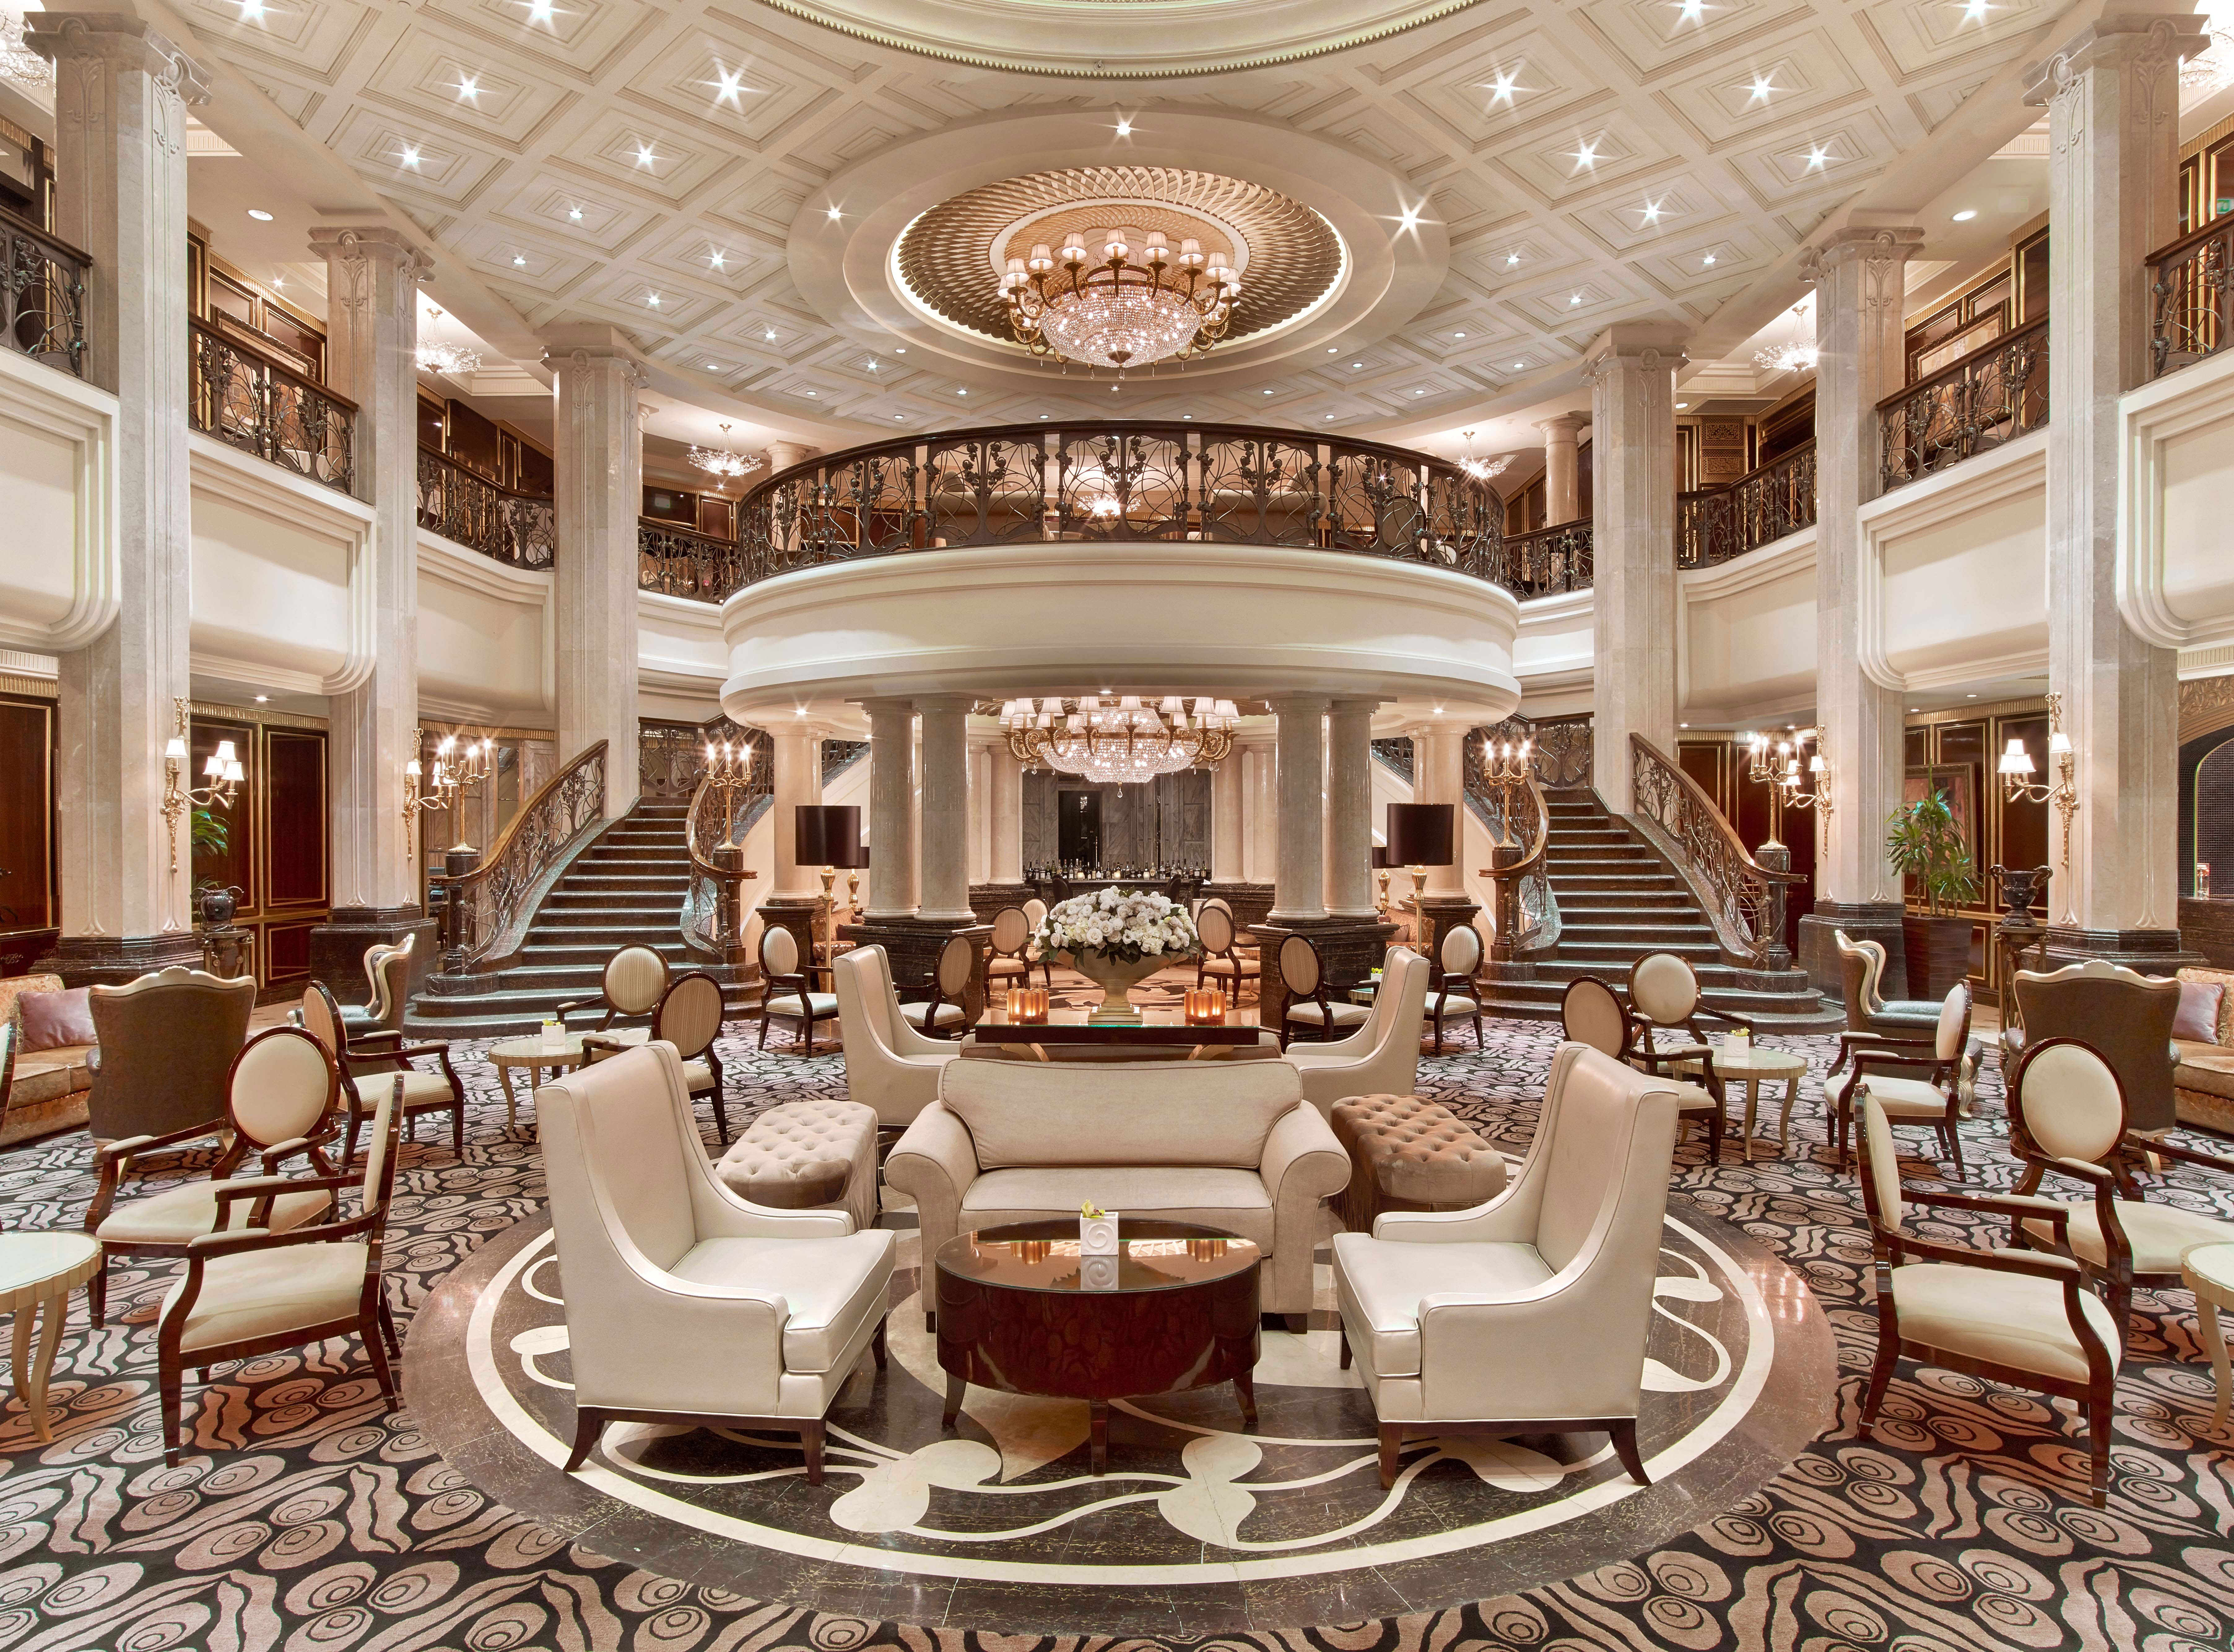 St regis hotels resorts debuts in russia with the st for St regis